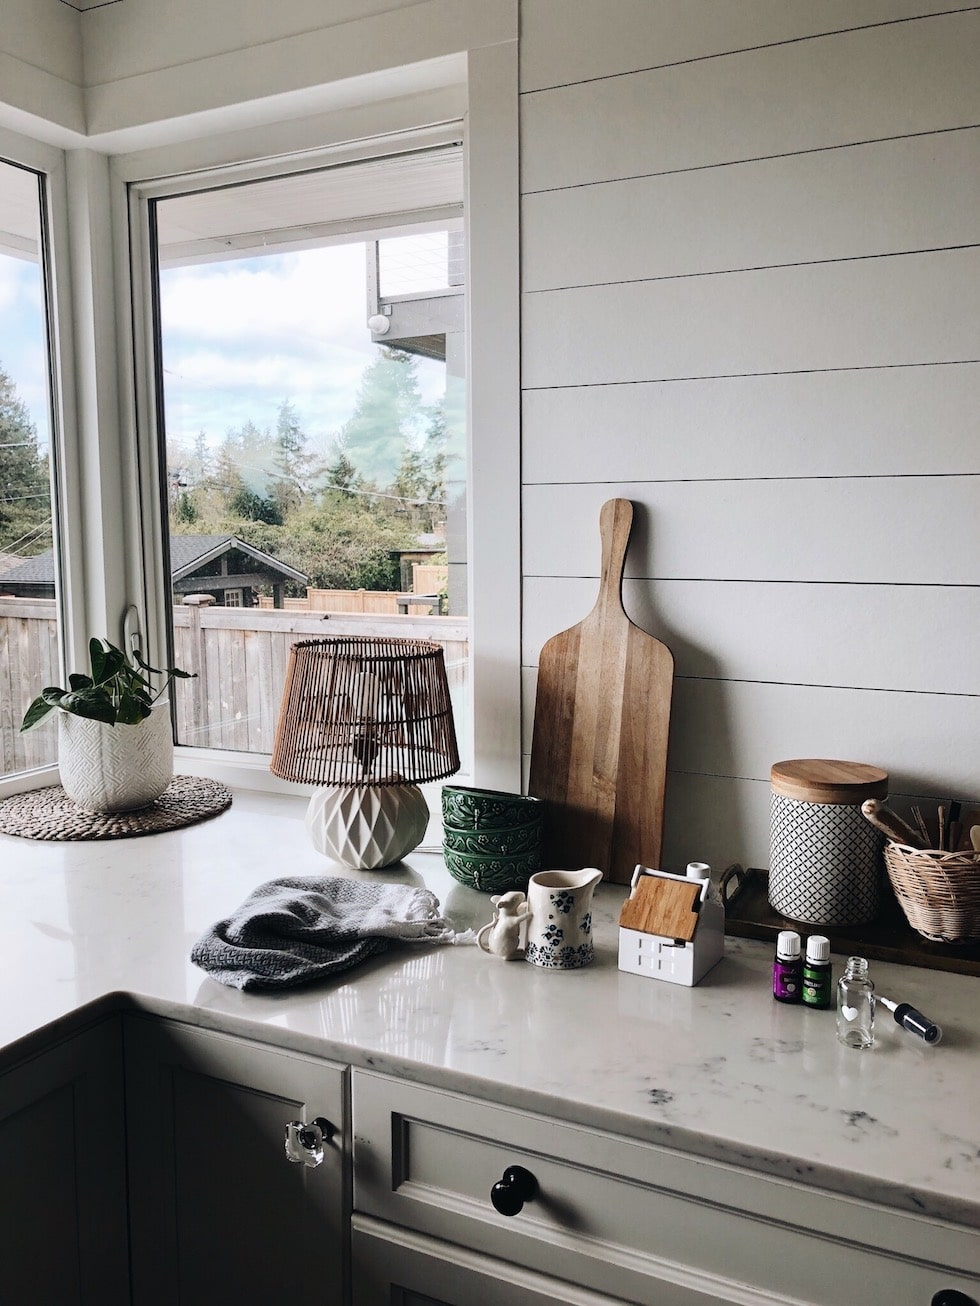 7 Reasons You Need Essential Oils in Your Home